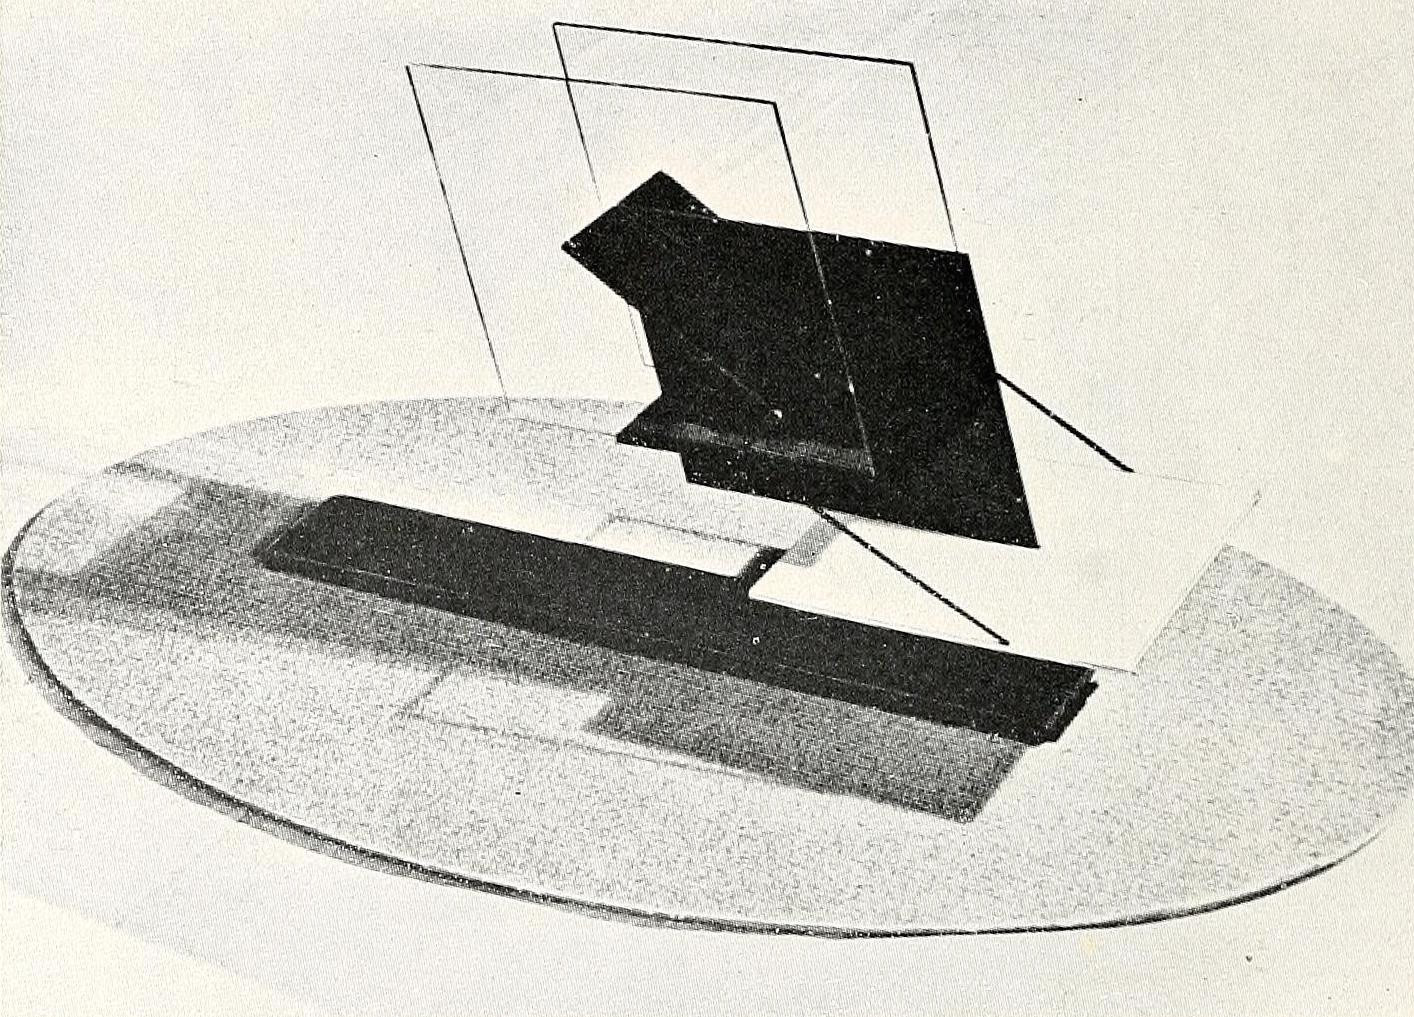 Naum Gabo, monument for an airport (1924-1925), glass and metal, 5 feet high